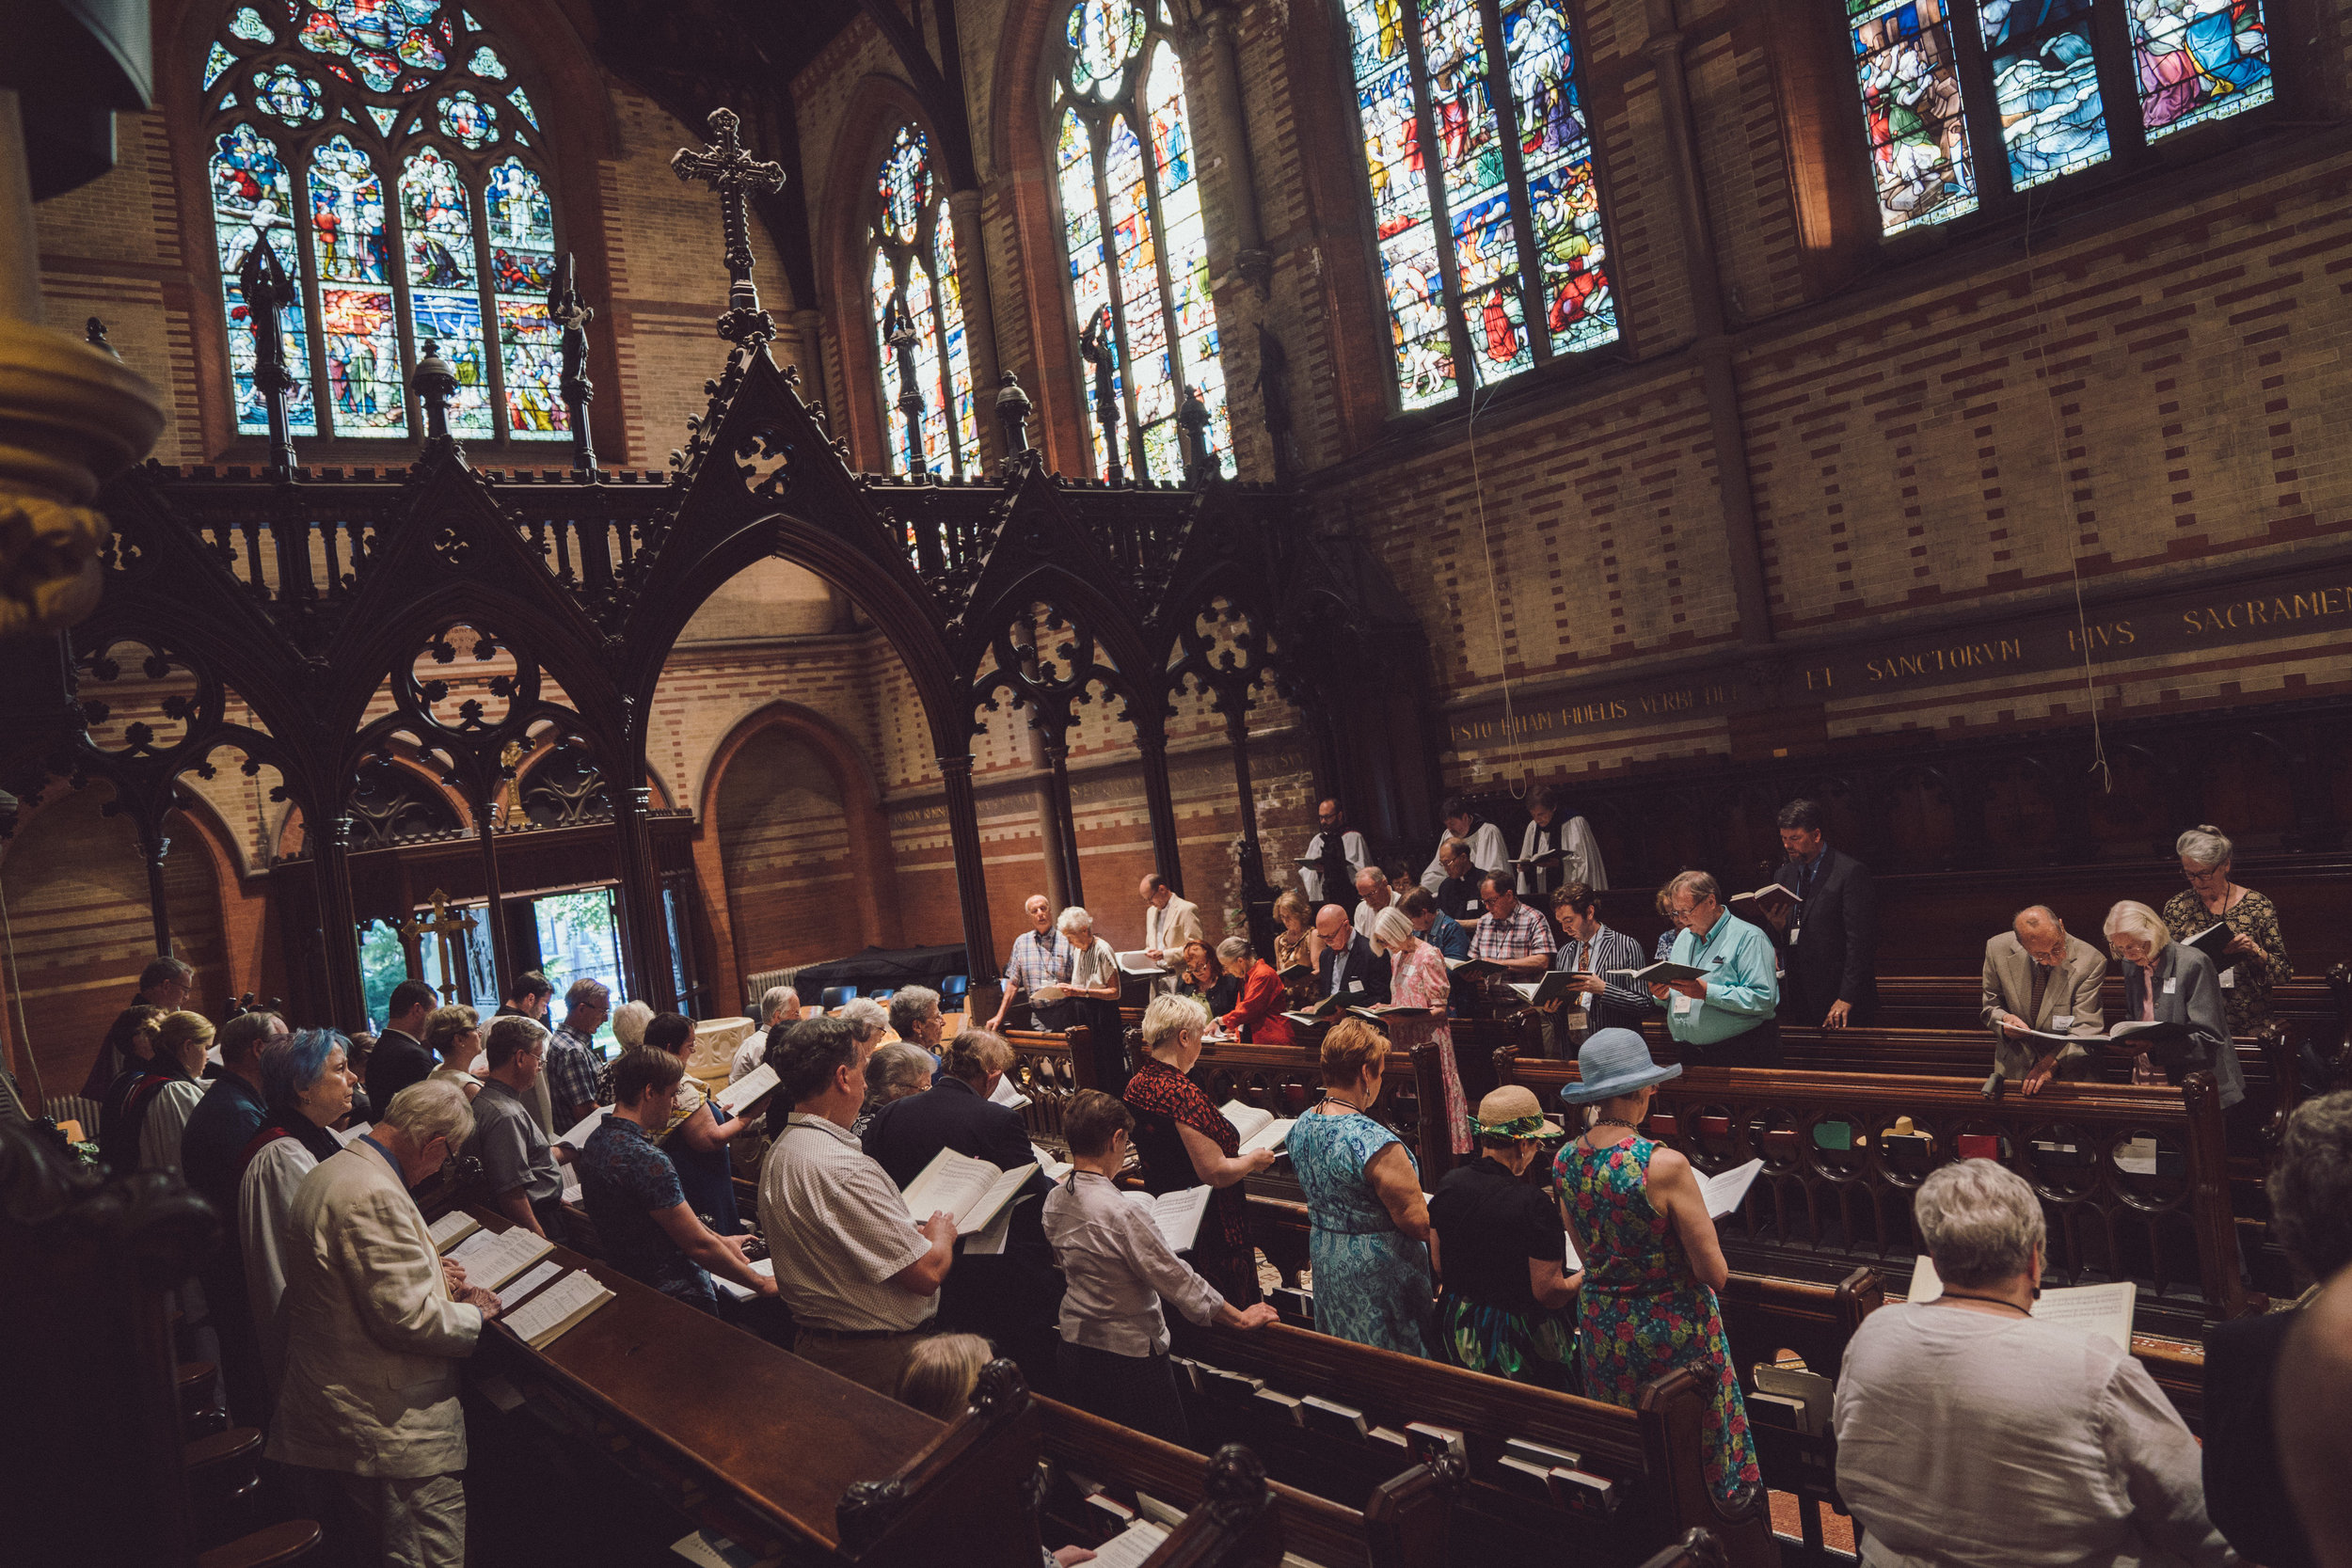 Mass at The General Seminary in New York NY. Photo by Daniel Lee.